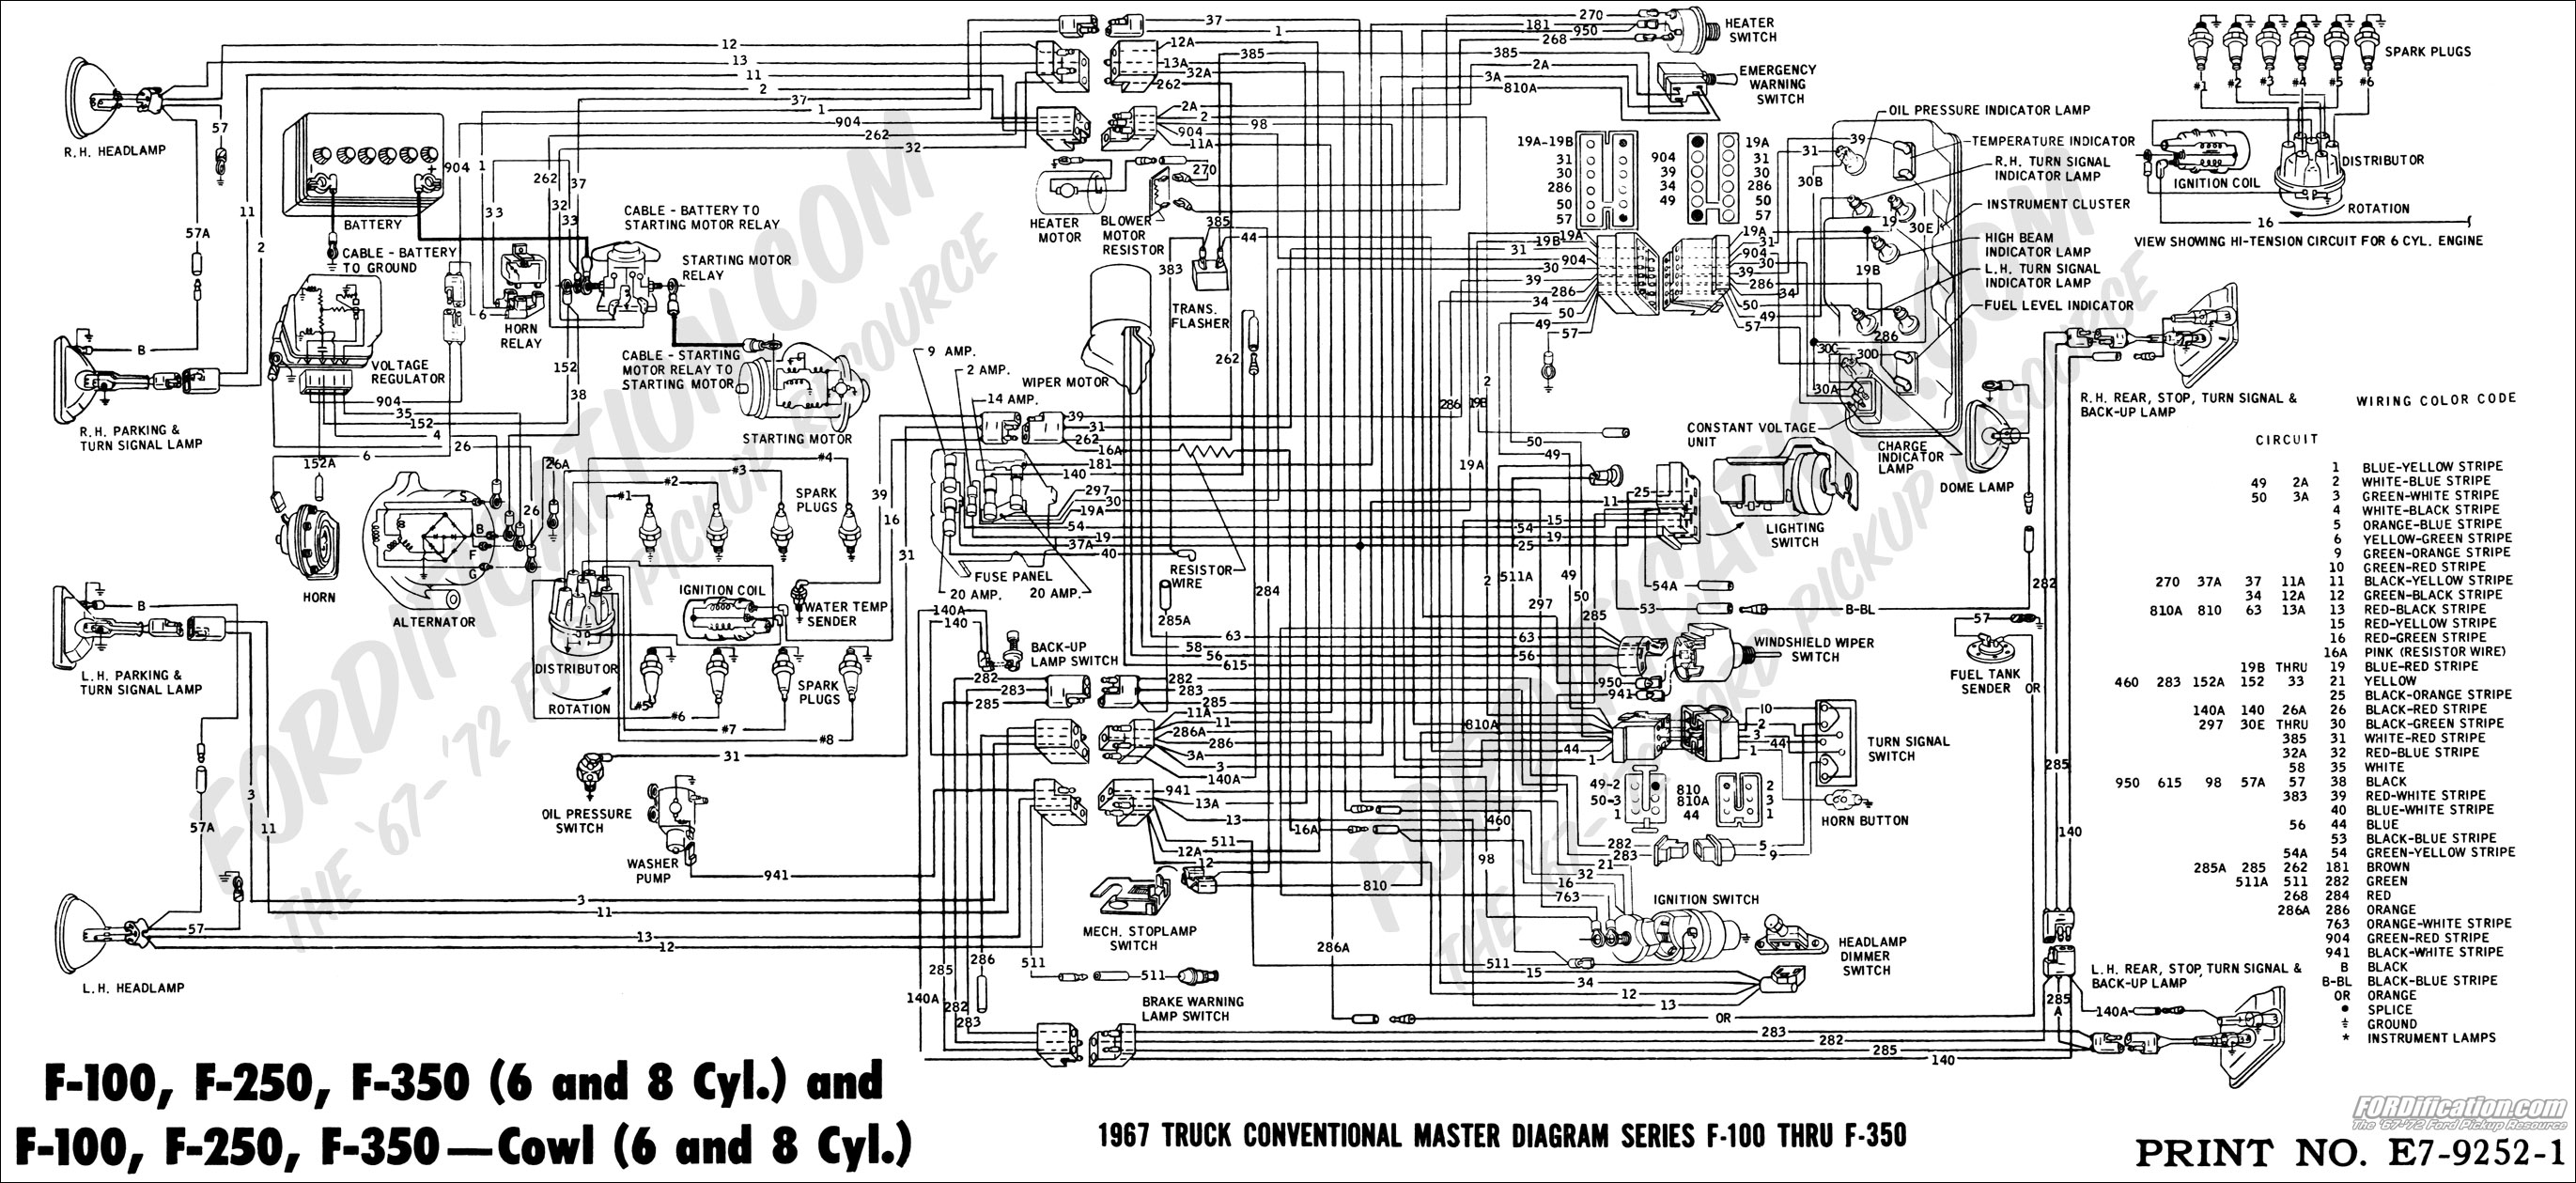 1999 Ford Ranger Steering Diagram Go Wiring 99 F250 Trailer F350 Cooling System F 150